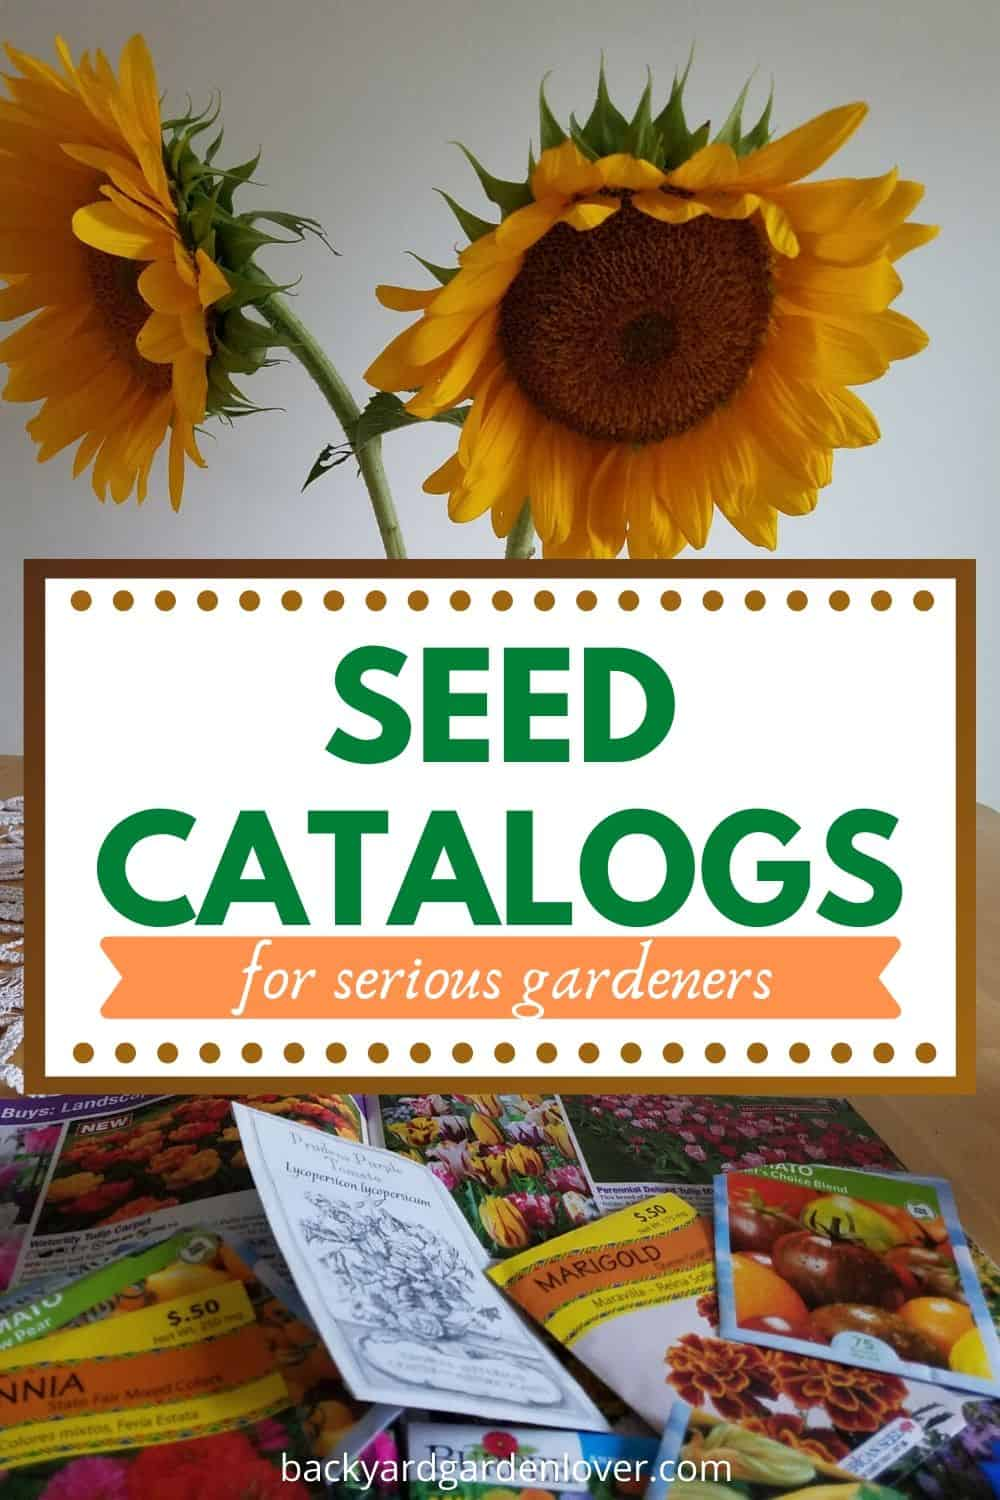 Seed catalogs for serious gardeners